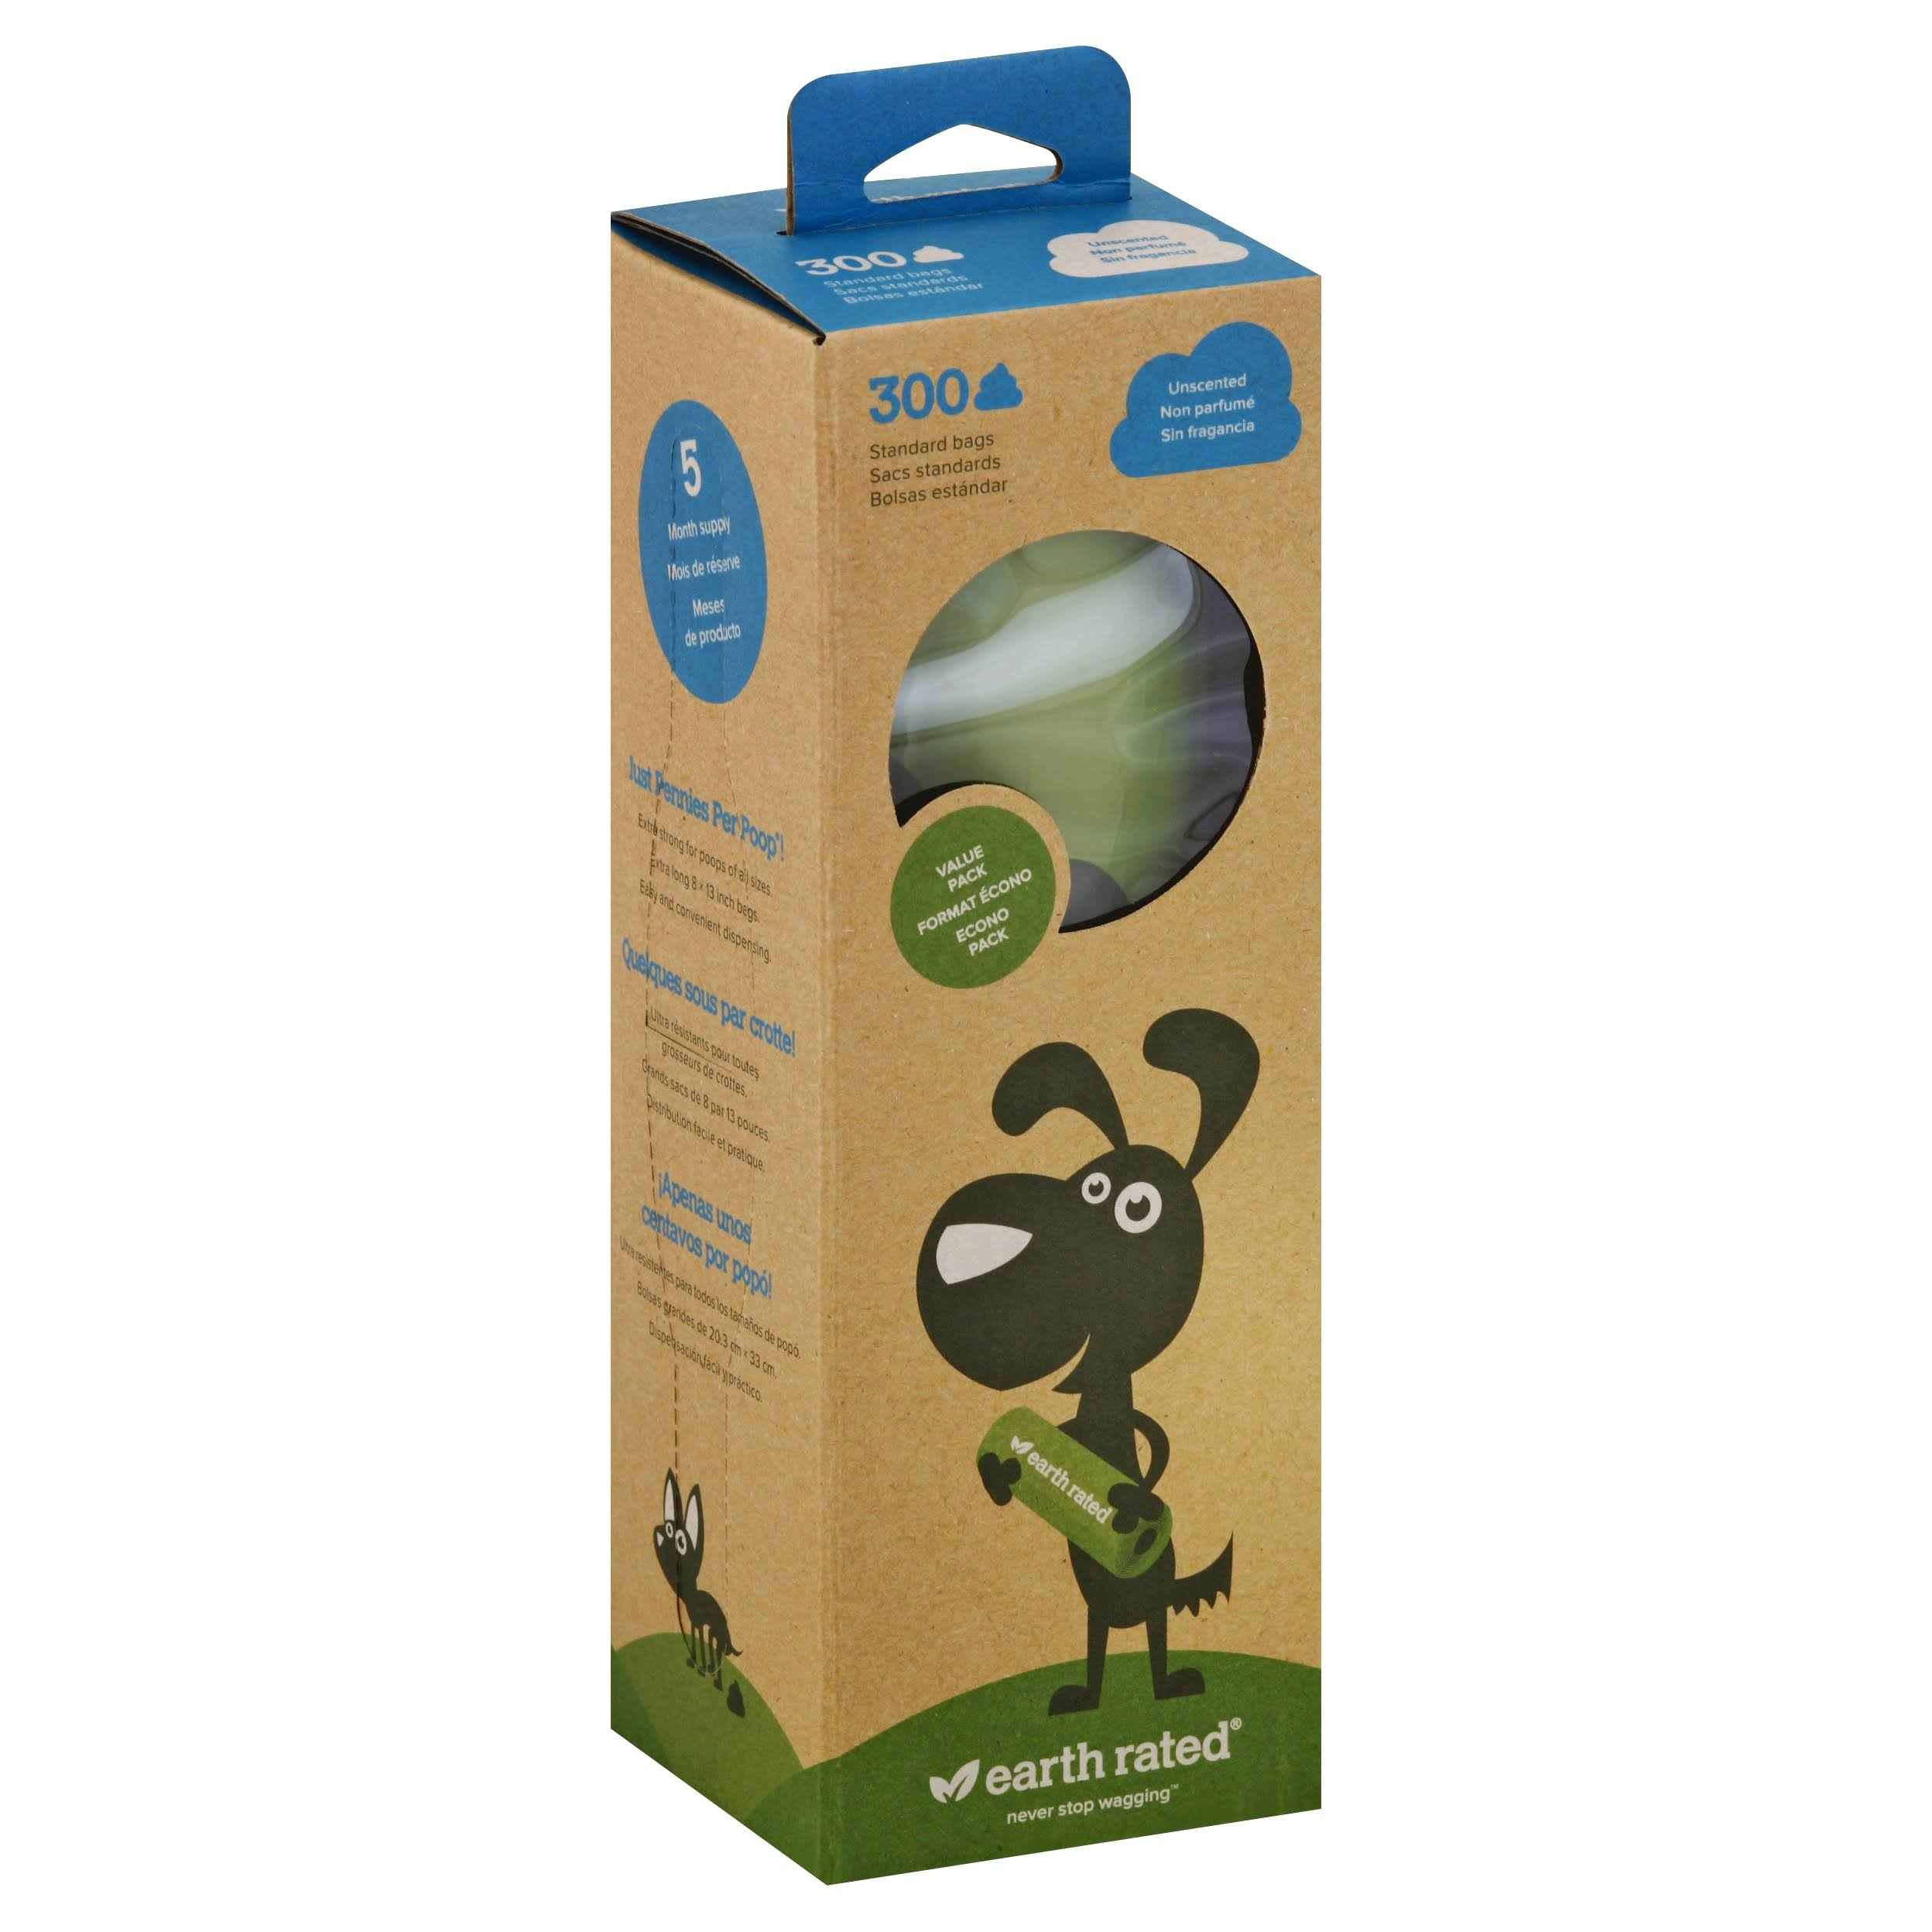 Earth Rated Dog Waste Bag - x300, Unscented